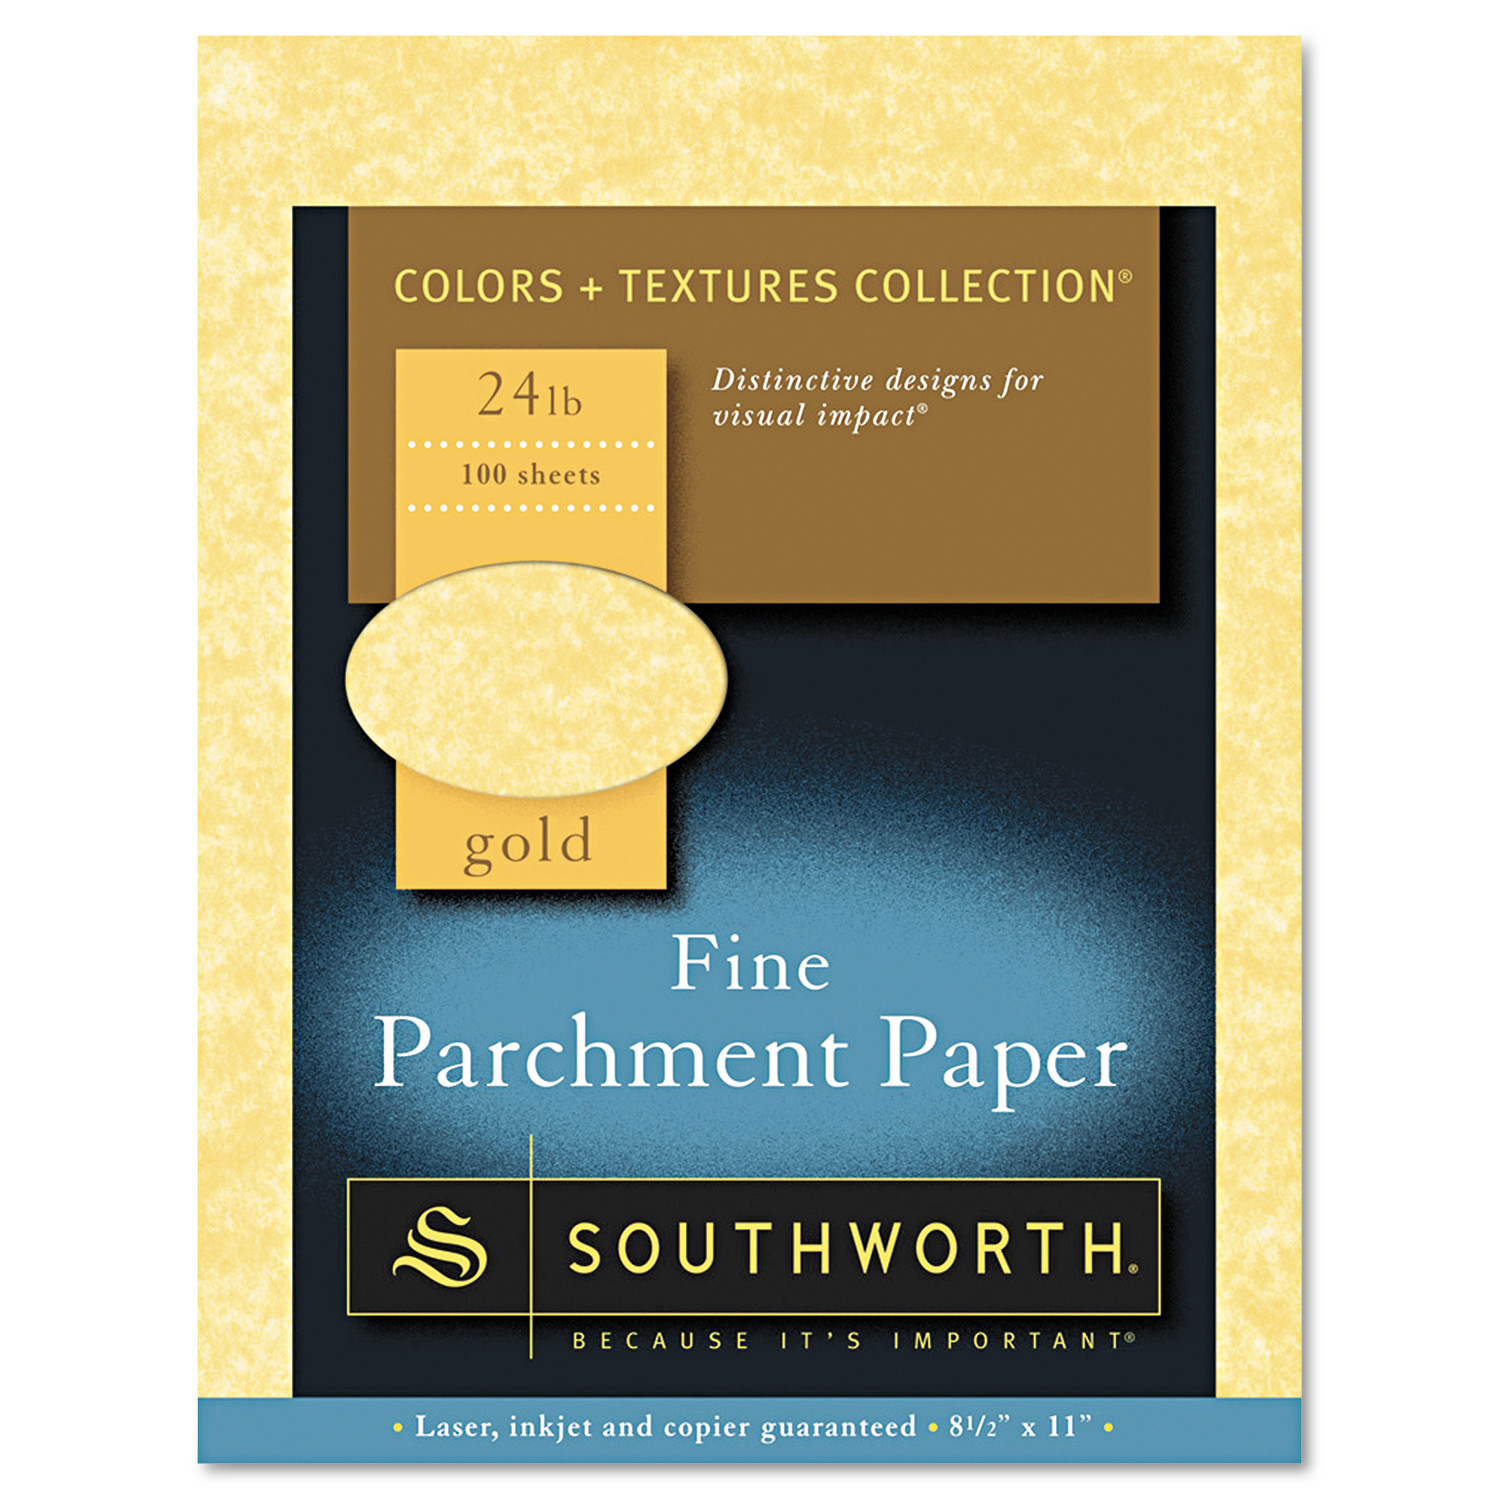 Southworth Parchment Specialty Paper, Gold, 24lb, 8 1/2 x 11, 100 Sheets -SOUP994CK336